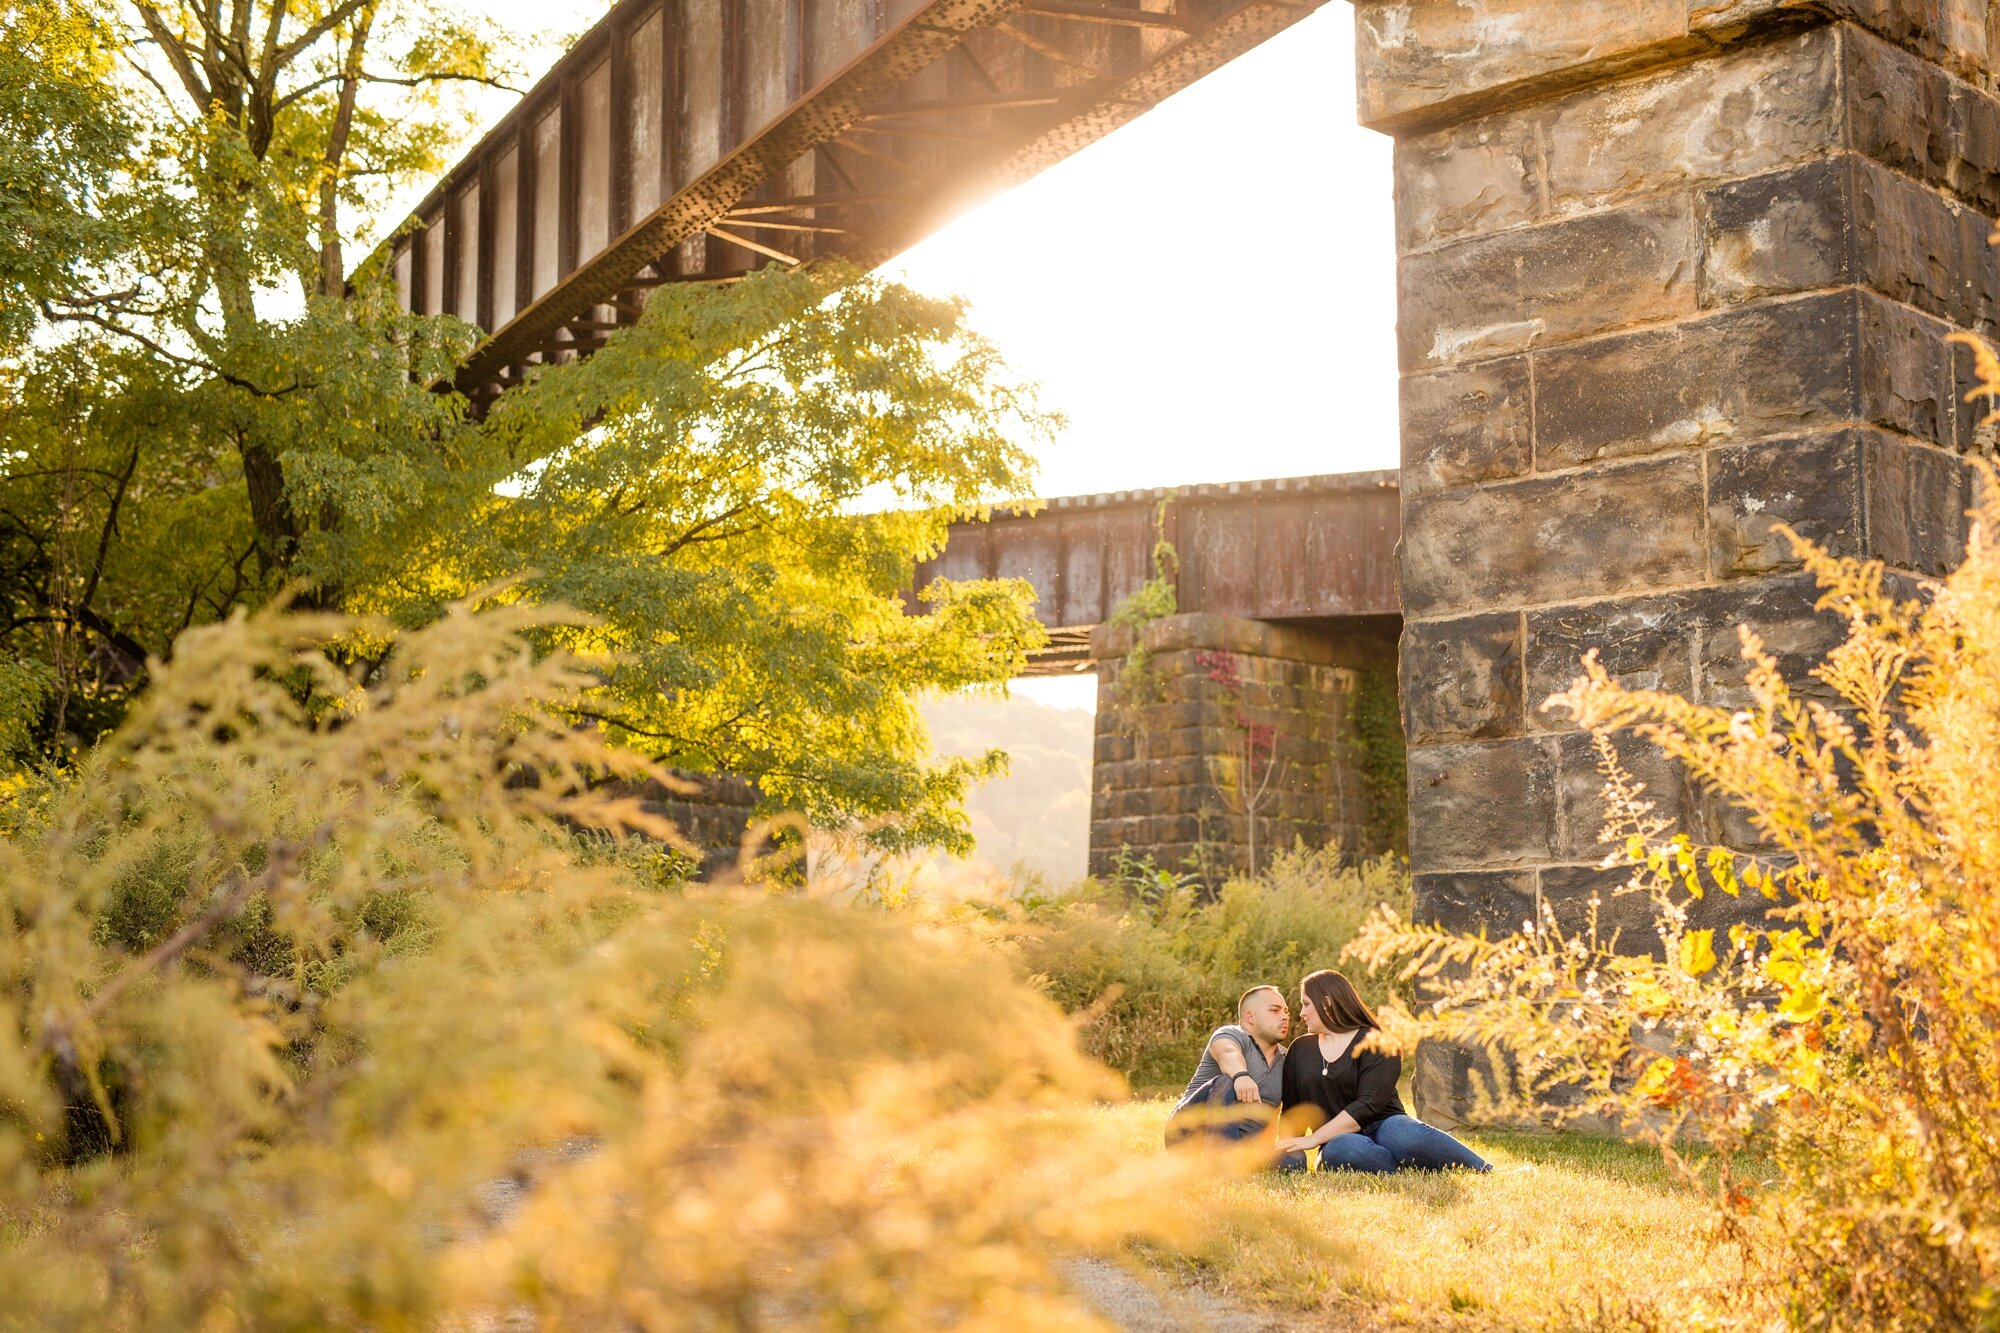 aspinwall riverfront park engagement photos, north shore engagement photos, pittsburgh wedding photographer, pittsburgh engagement photographer, pittsburgh proposal photographer